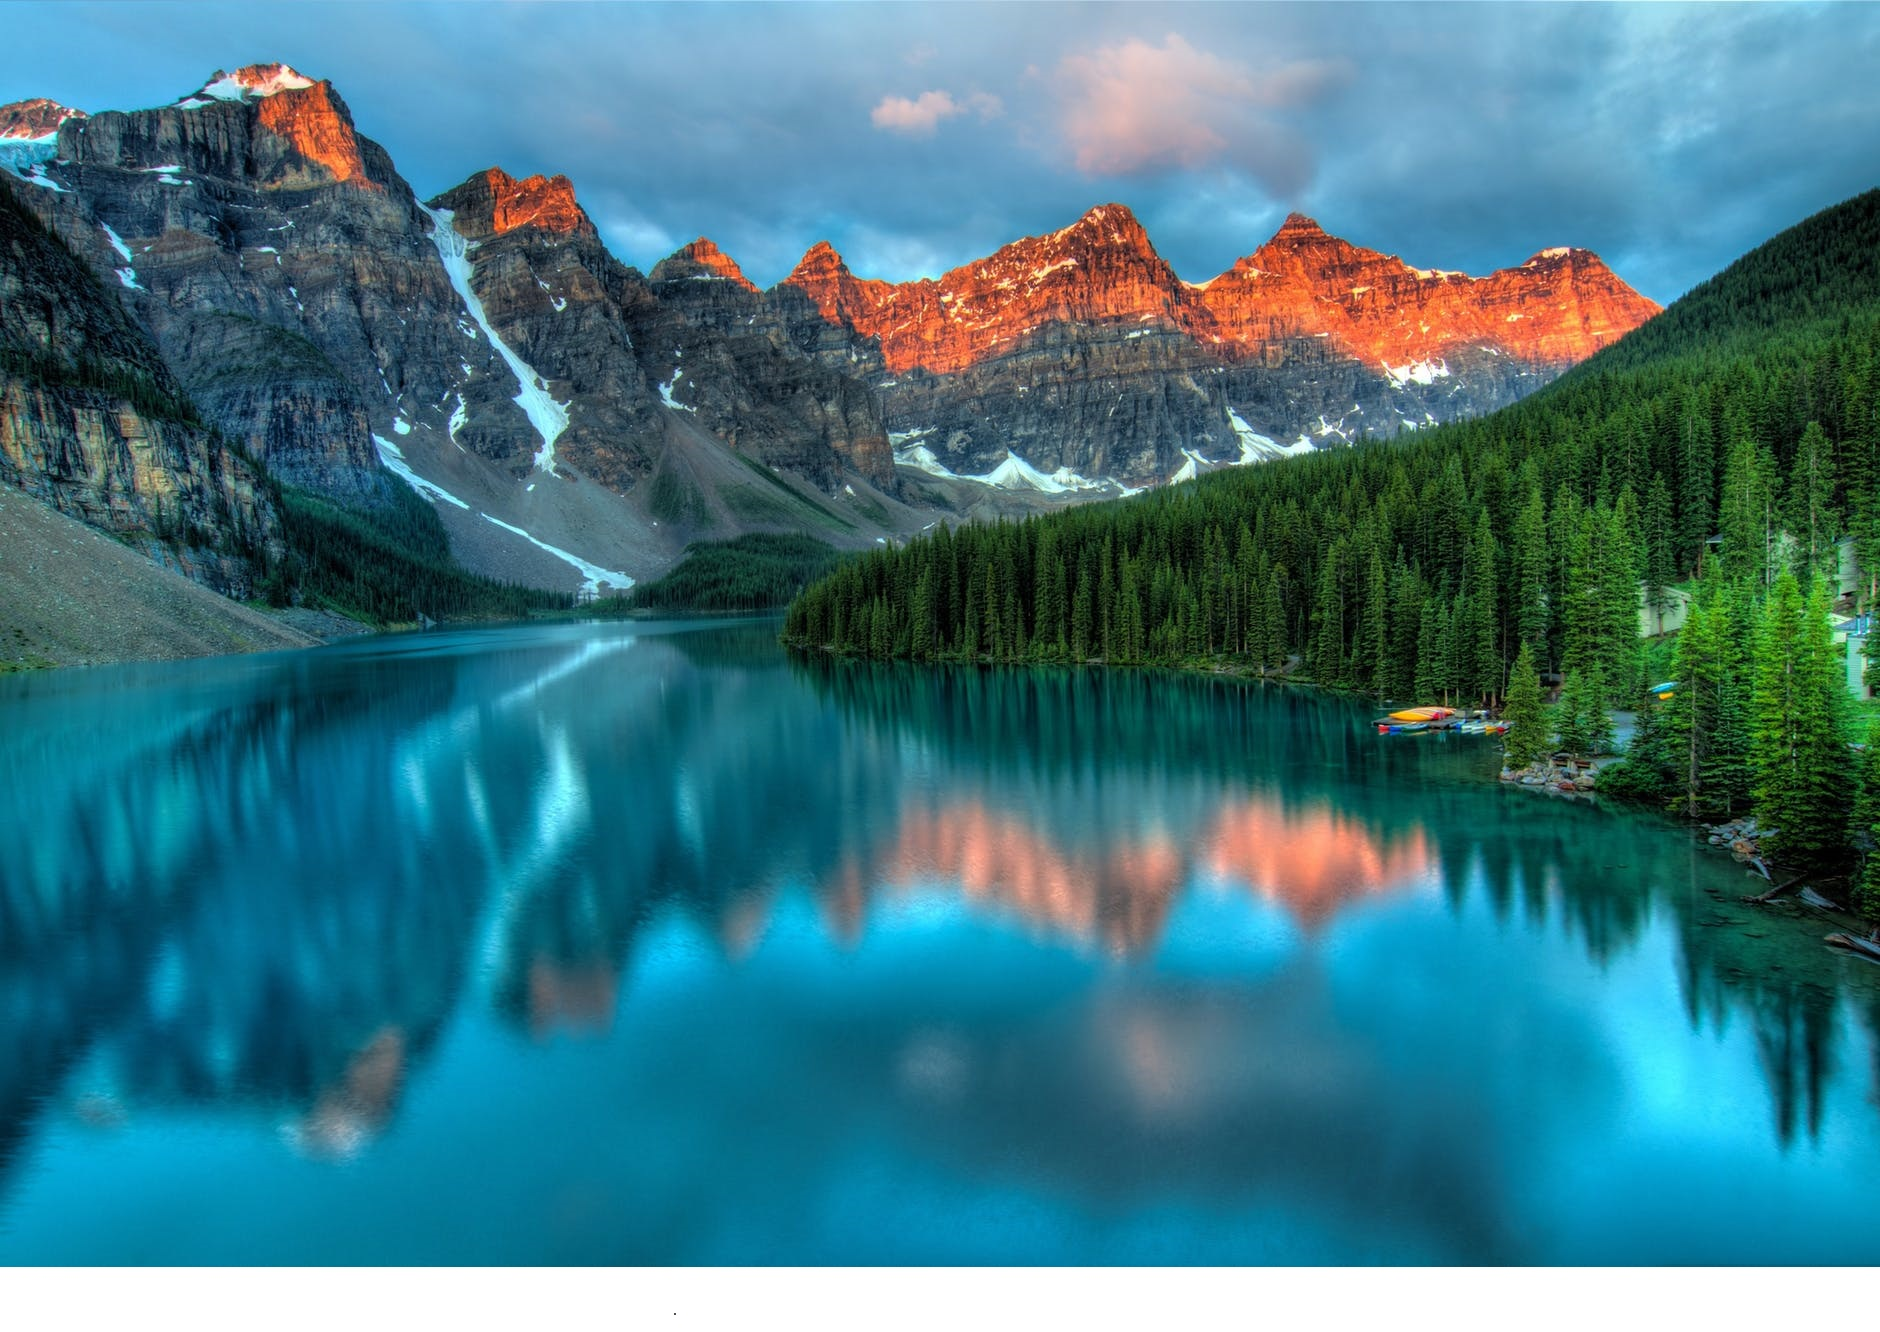 8 essential destinations for photography lovers